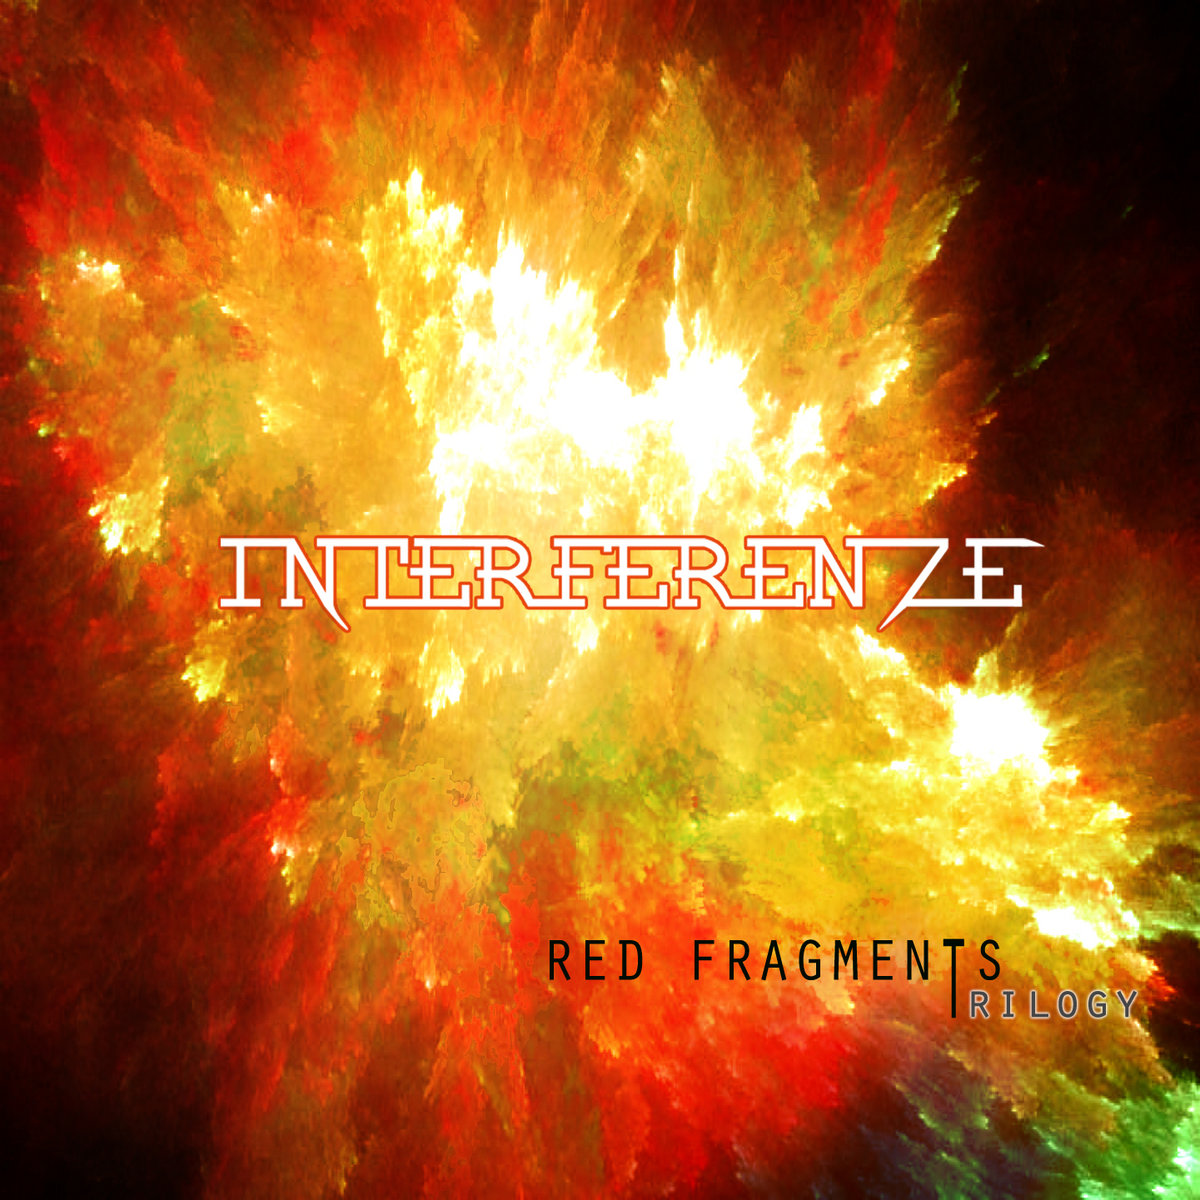 from Trilogy: Red Fragments by Interferenze